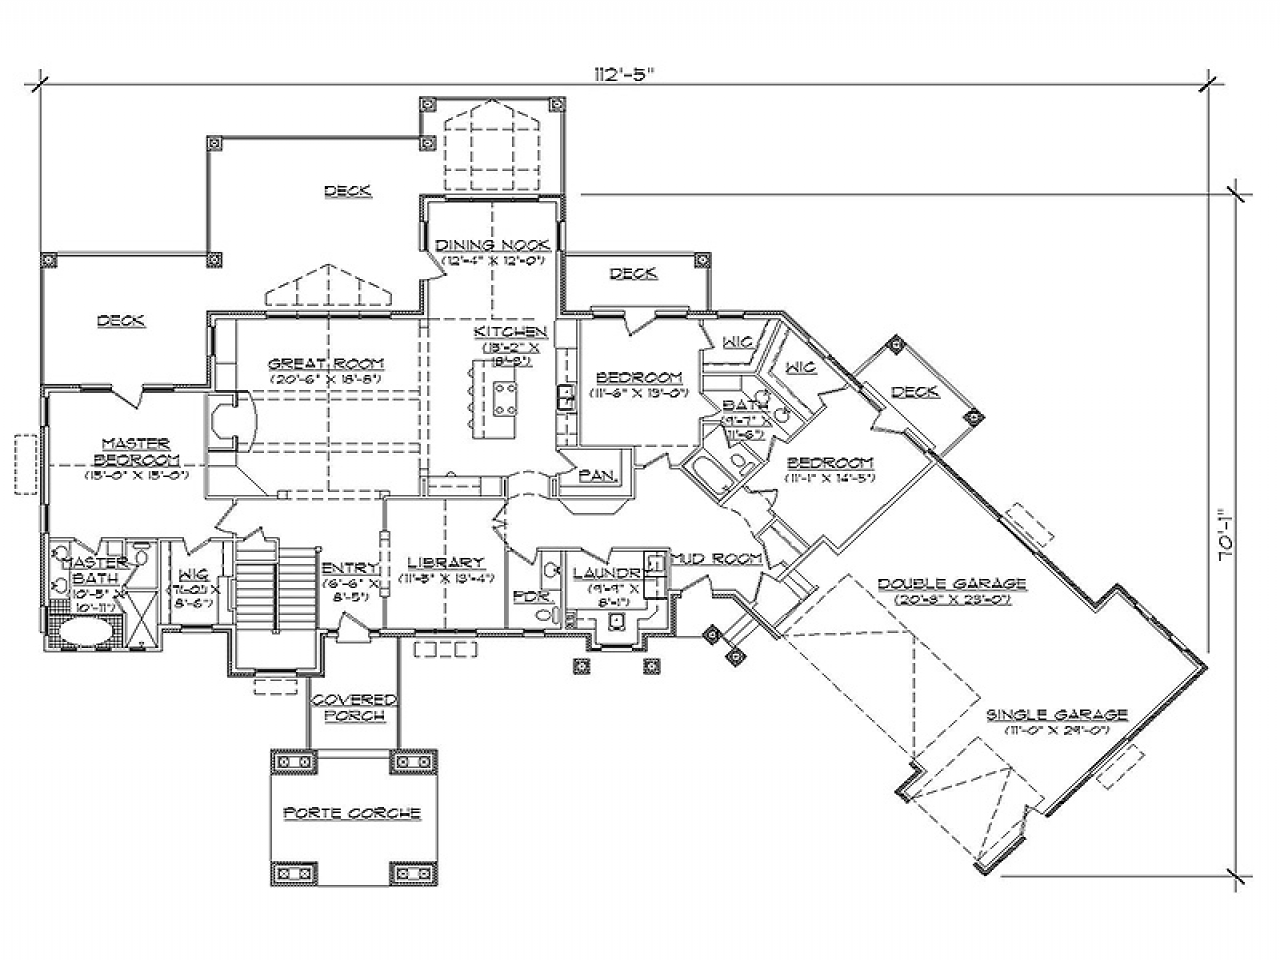 split level floor plans split level home floor plans free split level home floor plans one level floor plans 4349